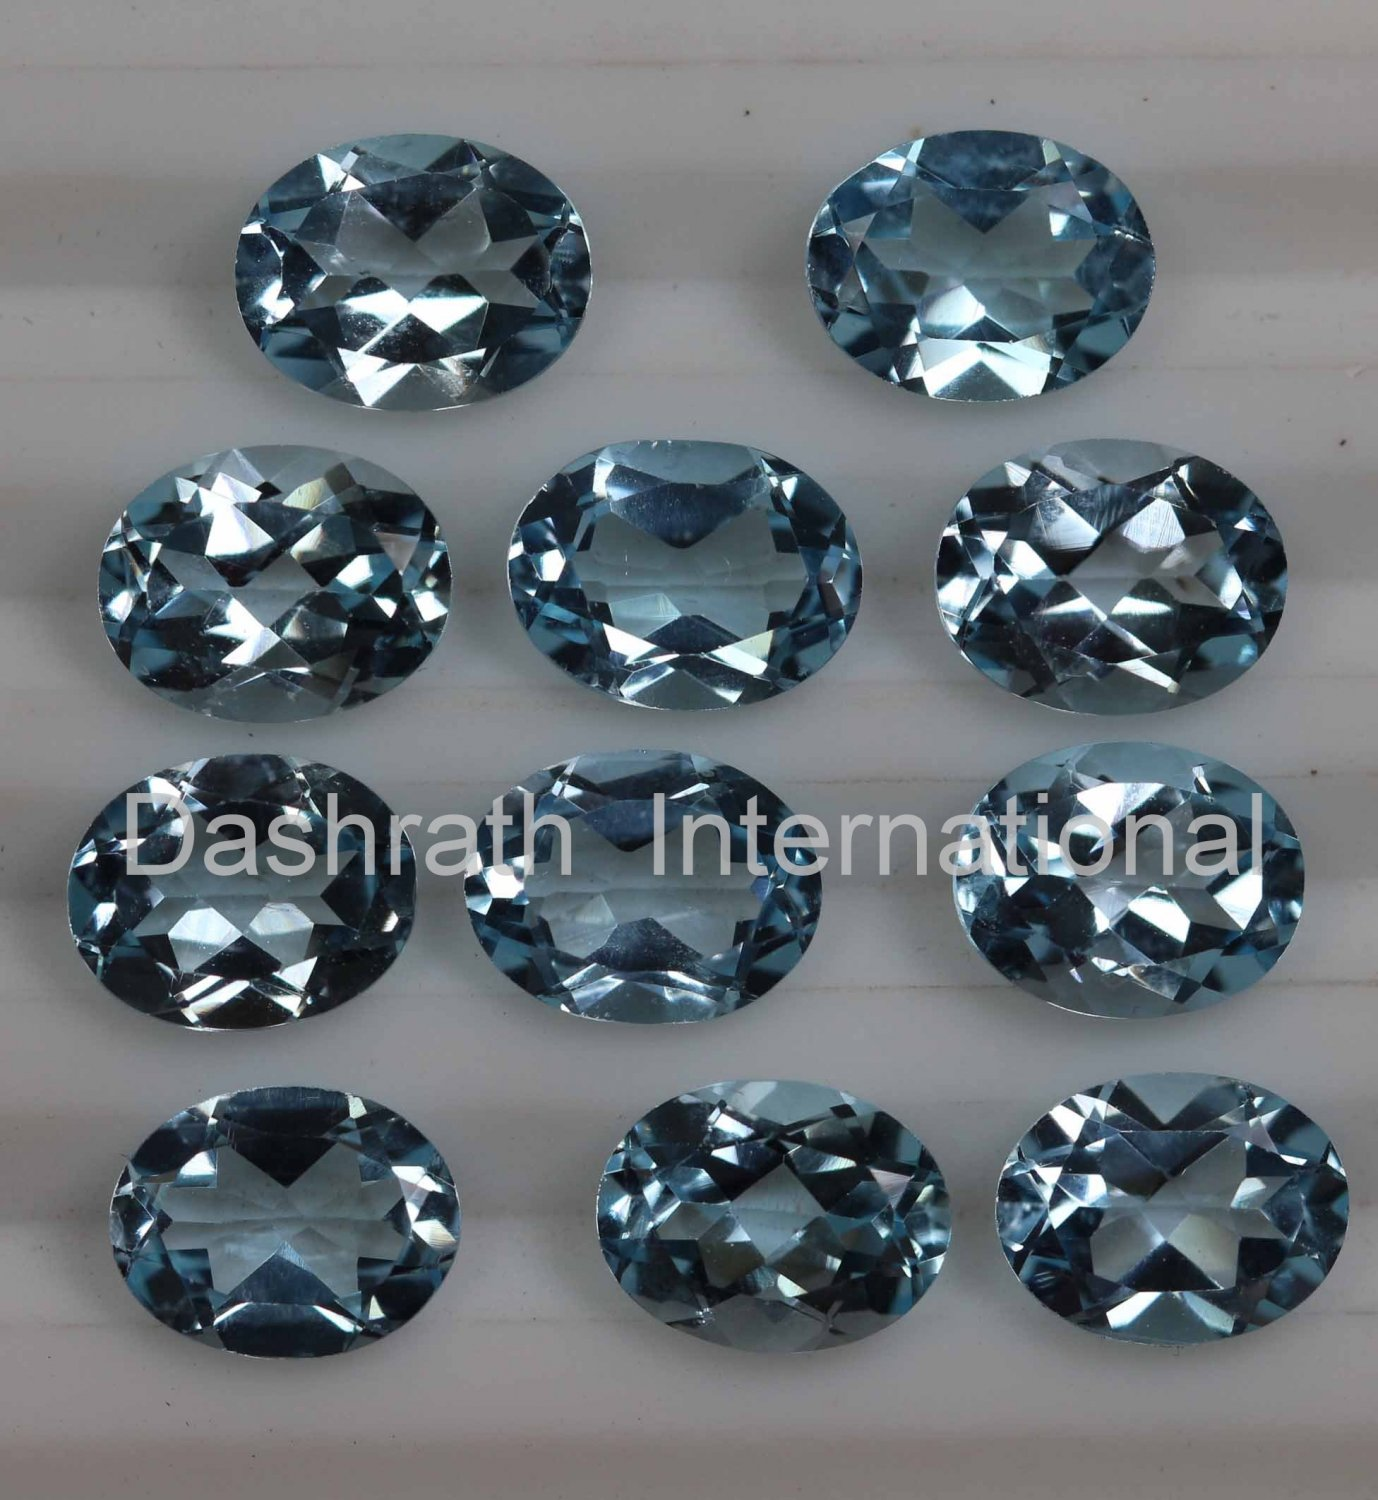 4x3mm Natural Sky Blue Topaz Faceted Cut Oval  50 Pieces Lot Blue Color  Top Quality Loose Gemstone